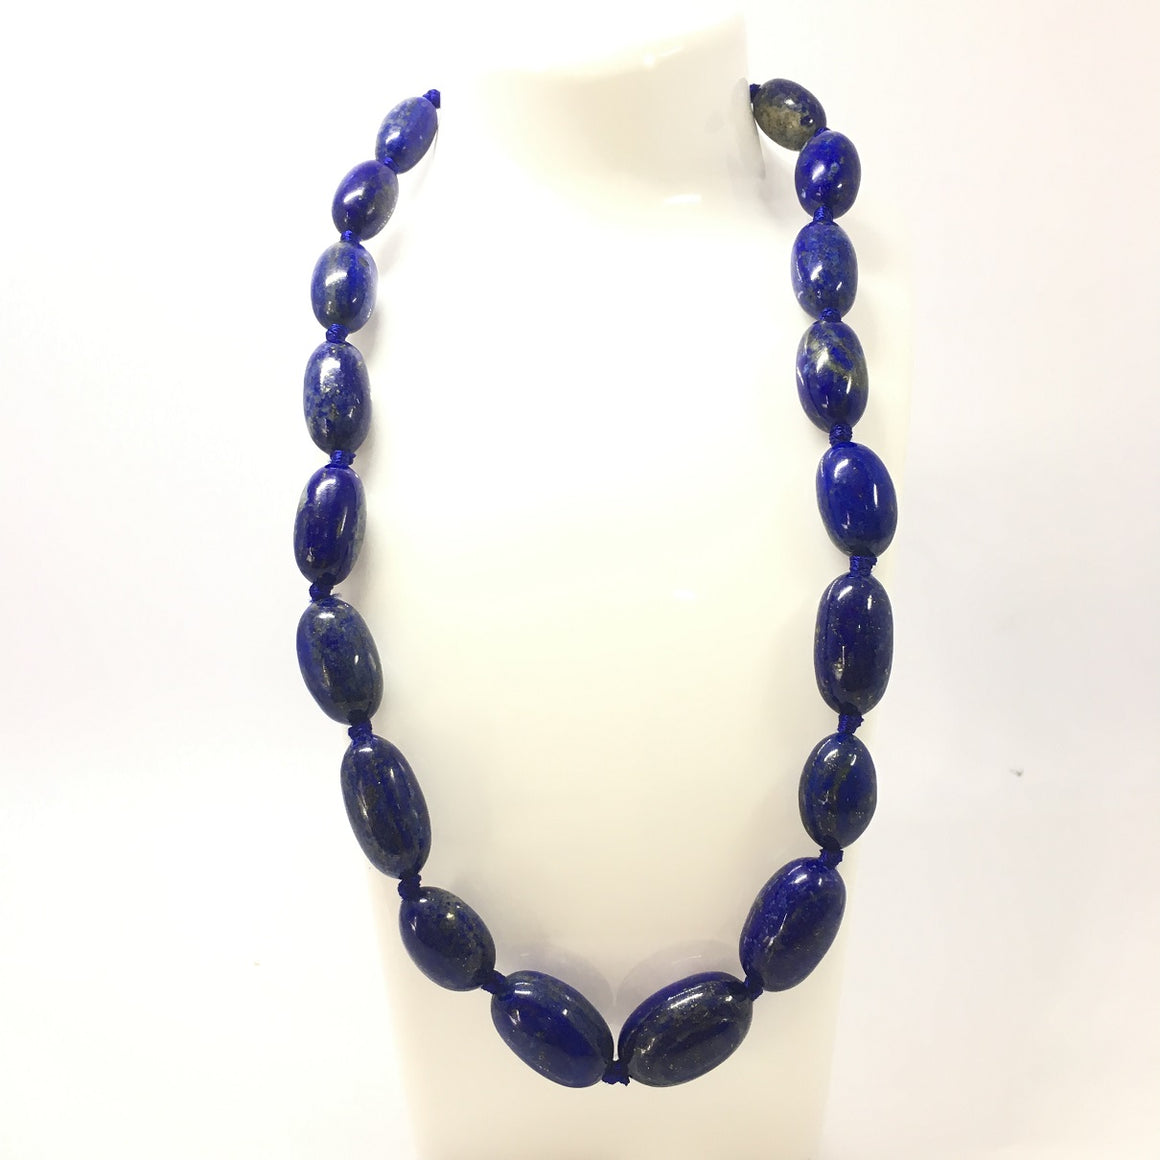 547.0 Carat, 19 Oval Beads Lapis Lazuli Necklace with Metal Lock